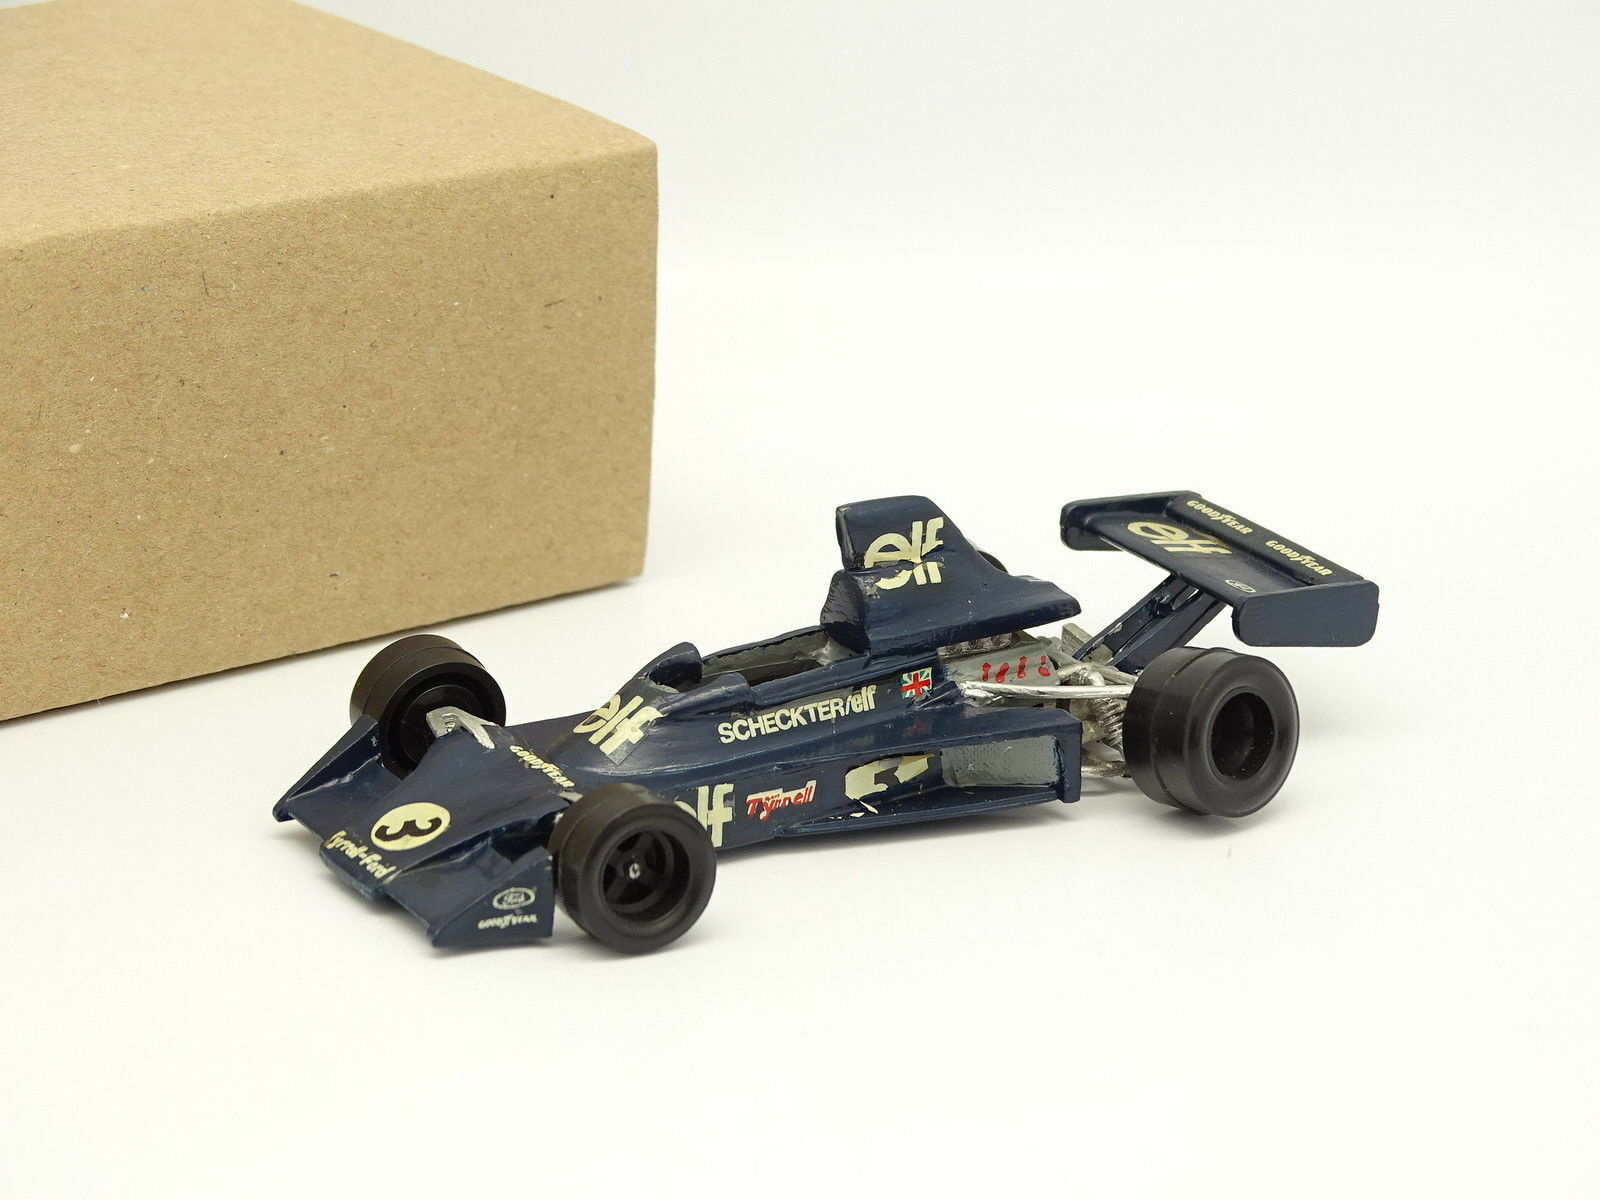 John day metal assembled kit 1 43 - f1 tyrrell 007 2 GERMANY GP 1975 ferrari